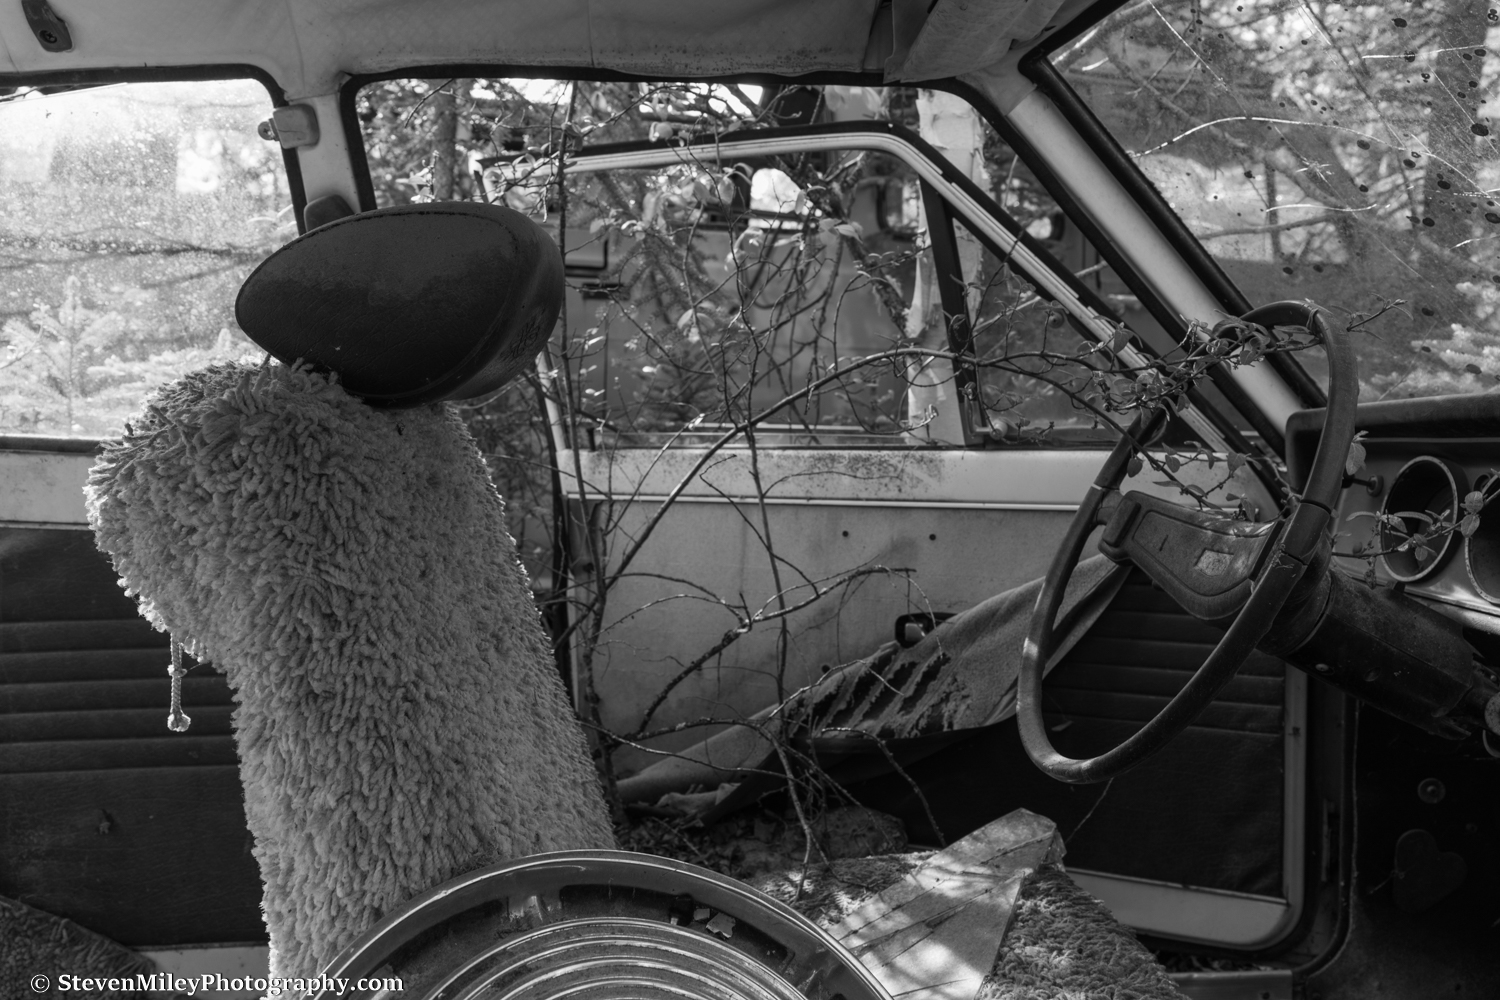 Many of the vehicles in the junkyard still contain bumper stickers, decals, and other additions like the shag carpet seat cover in this Datsun 1200 that recall the personal lives of their past owners.